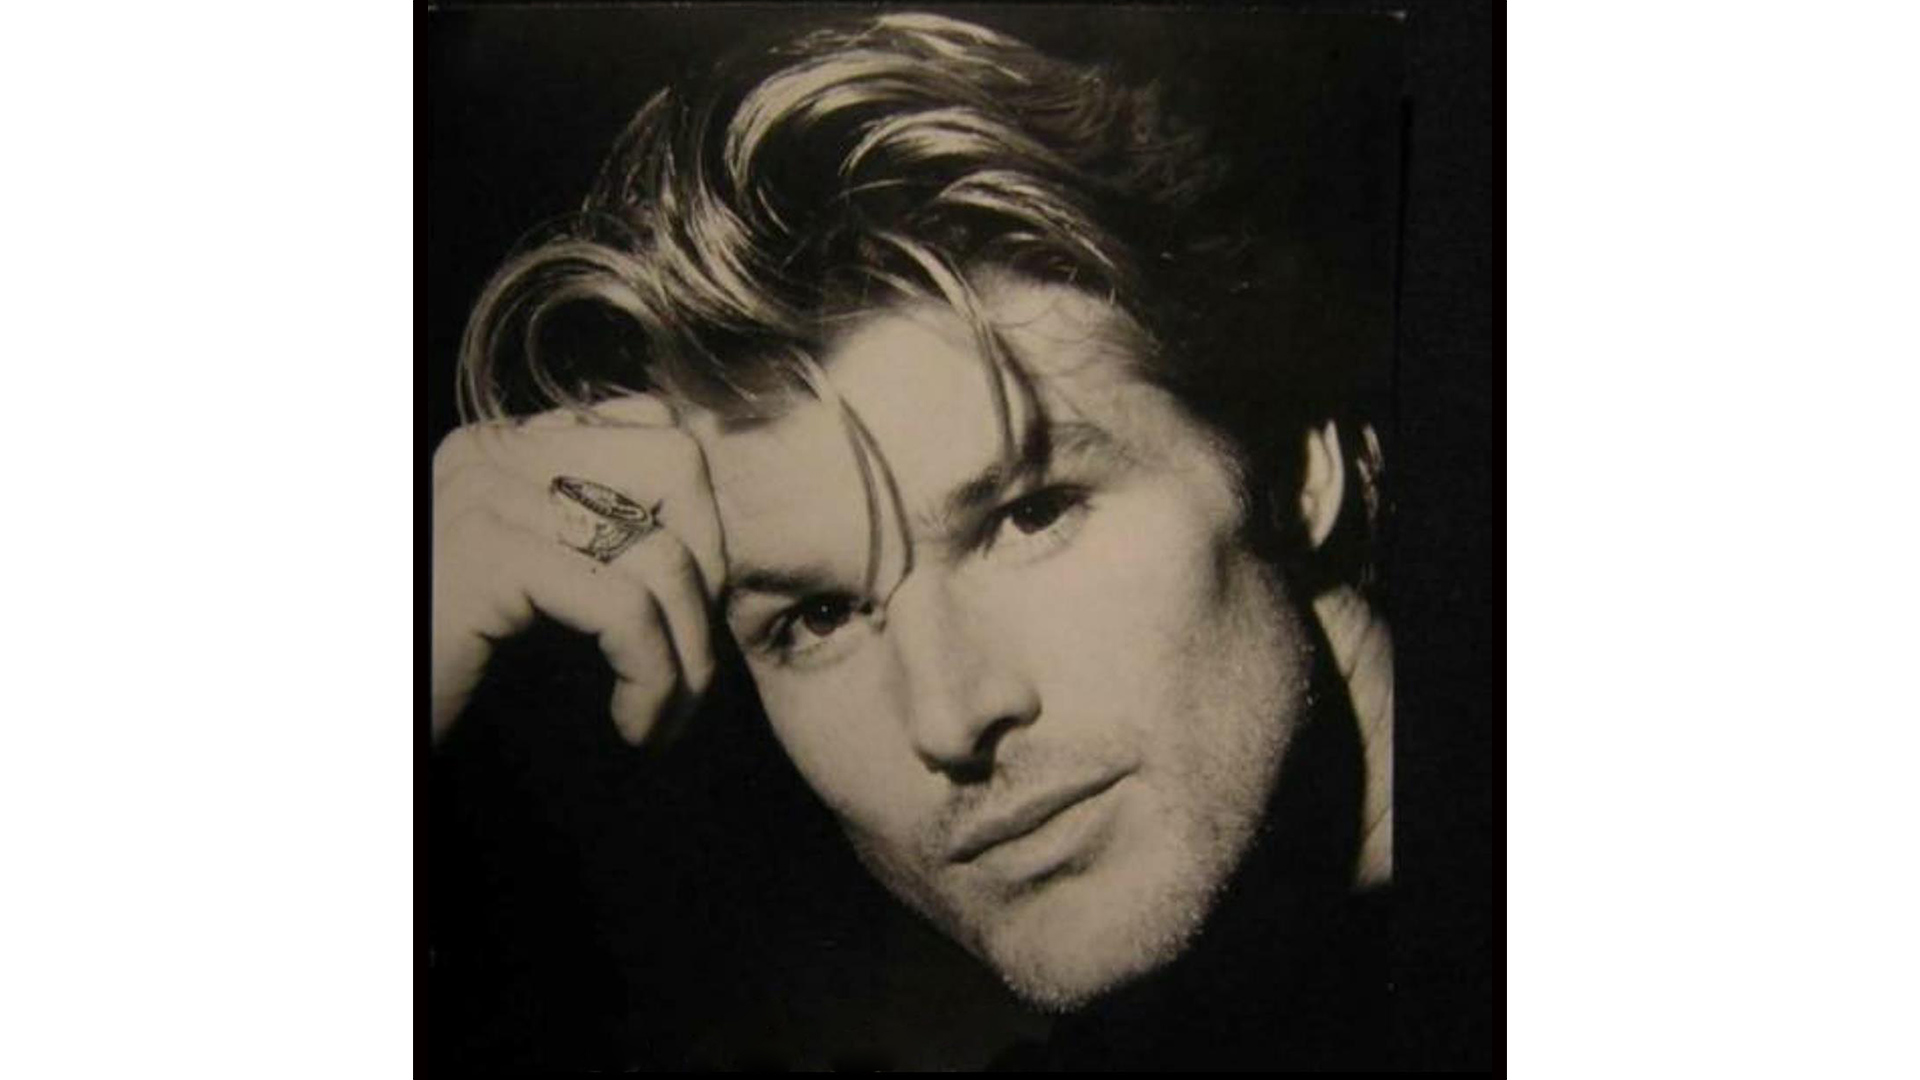 Winsor Harmon oozed coolness with swept-back hair.